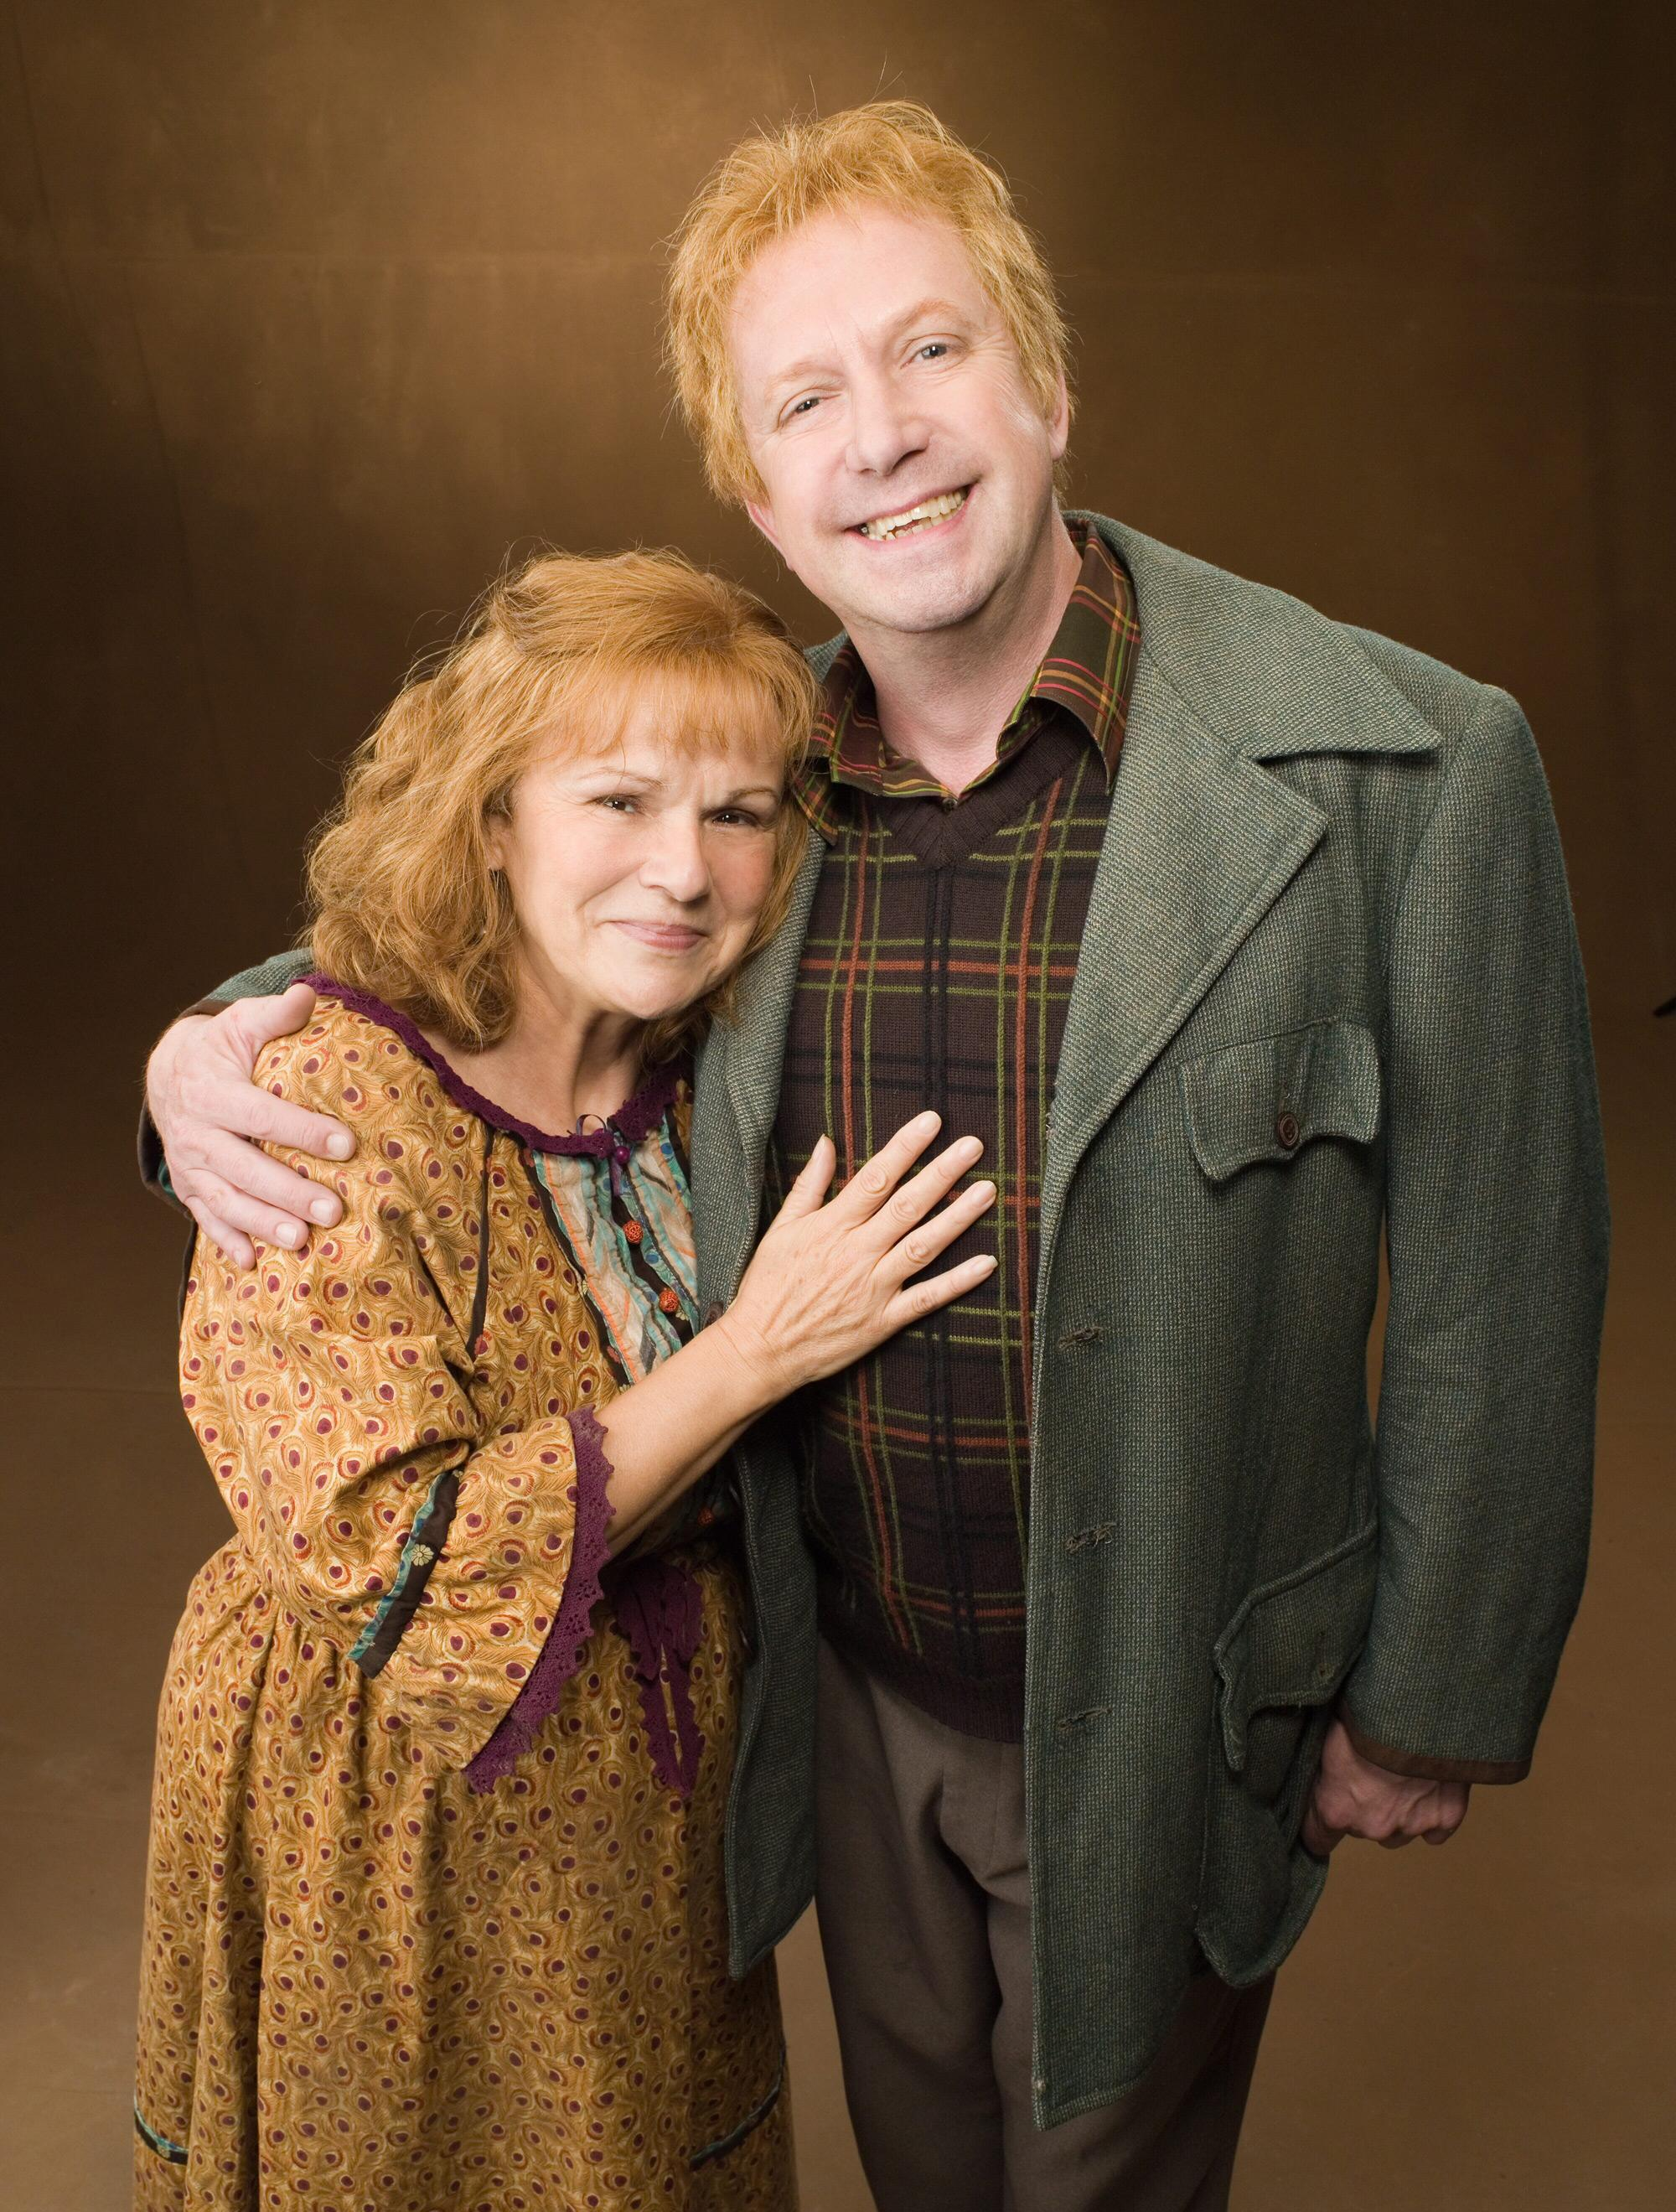 Molly Weasley And Harry Potter